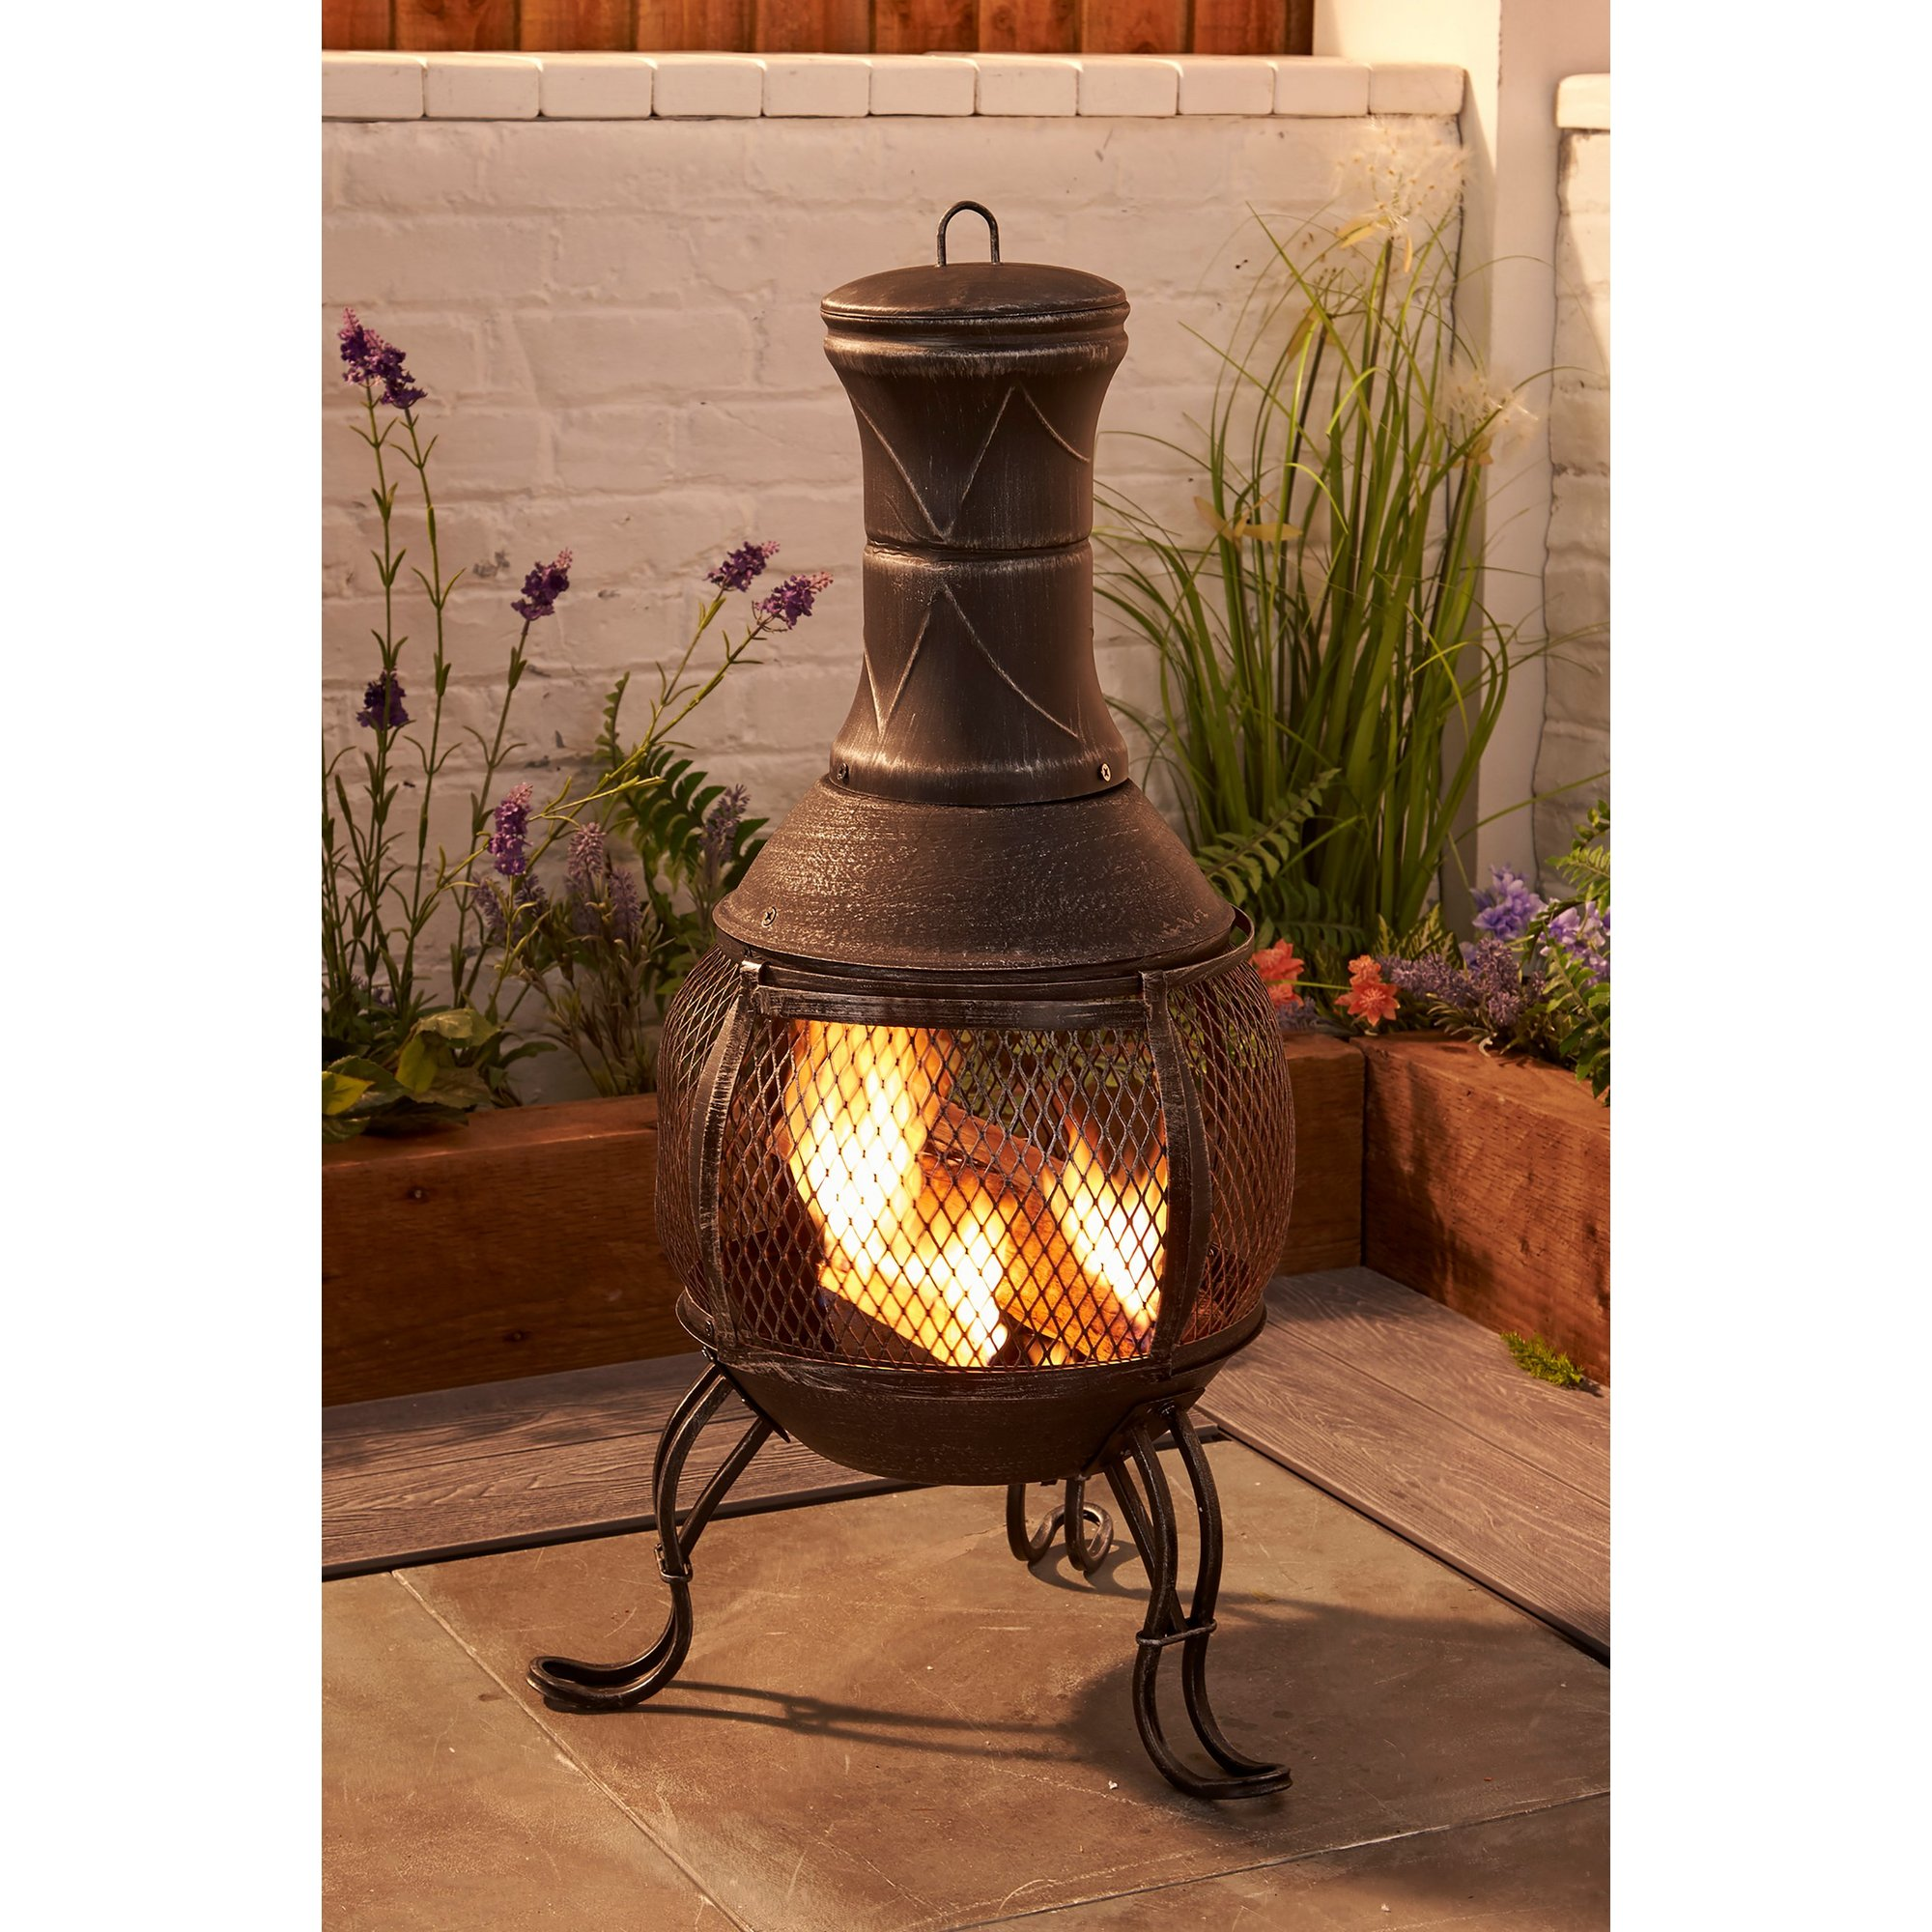 Image of Cast Iron and Steel Chiminea